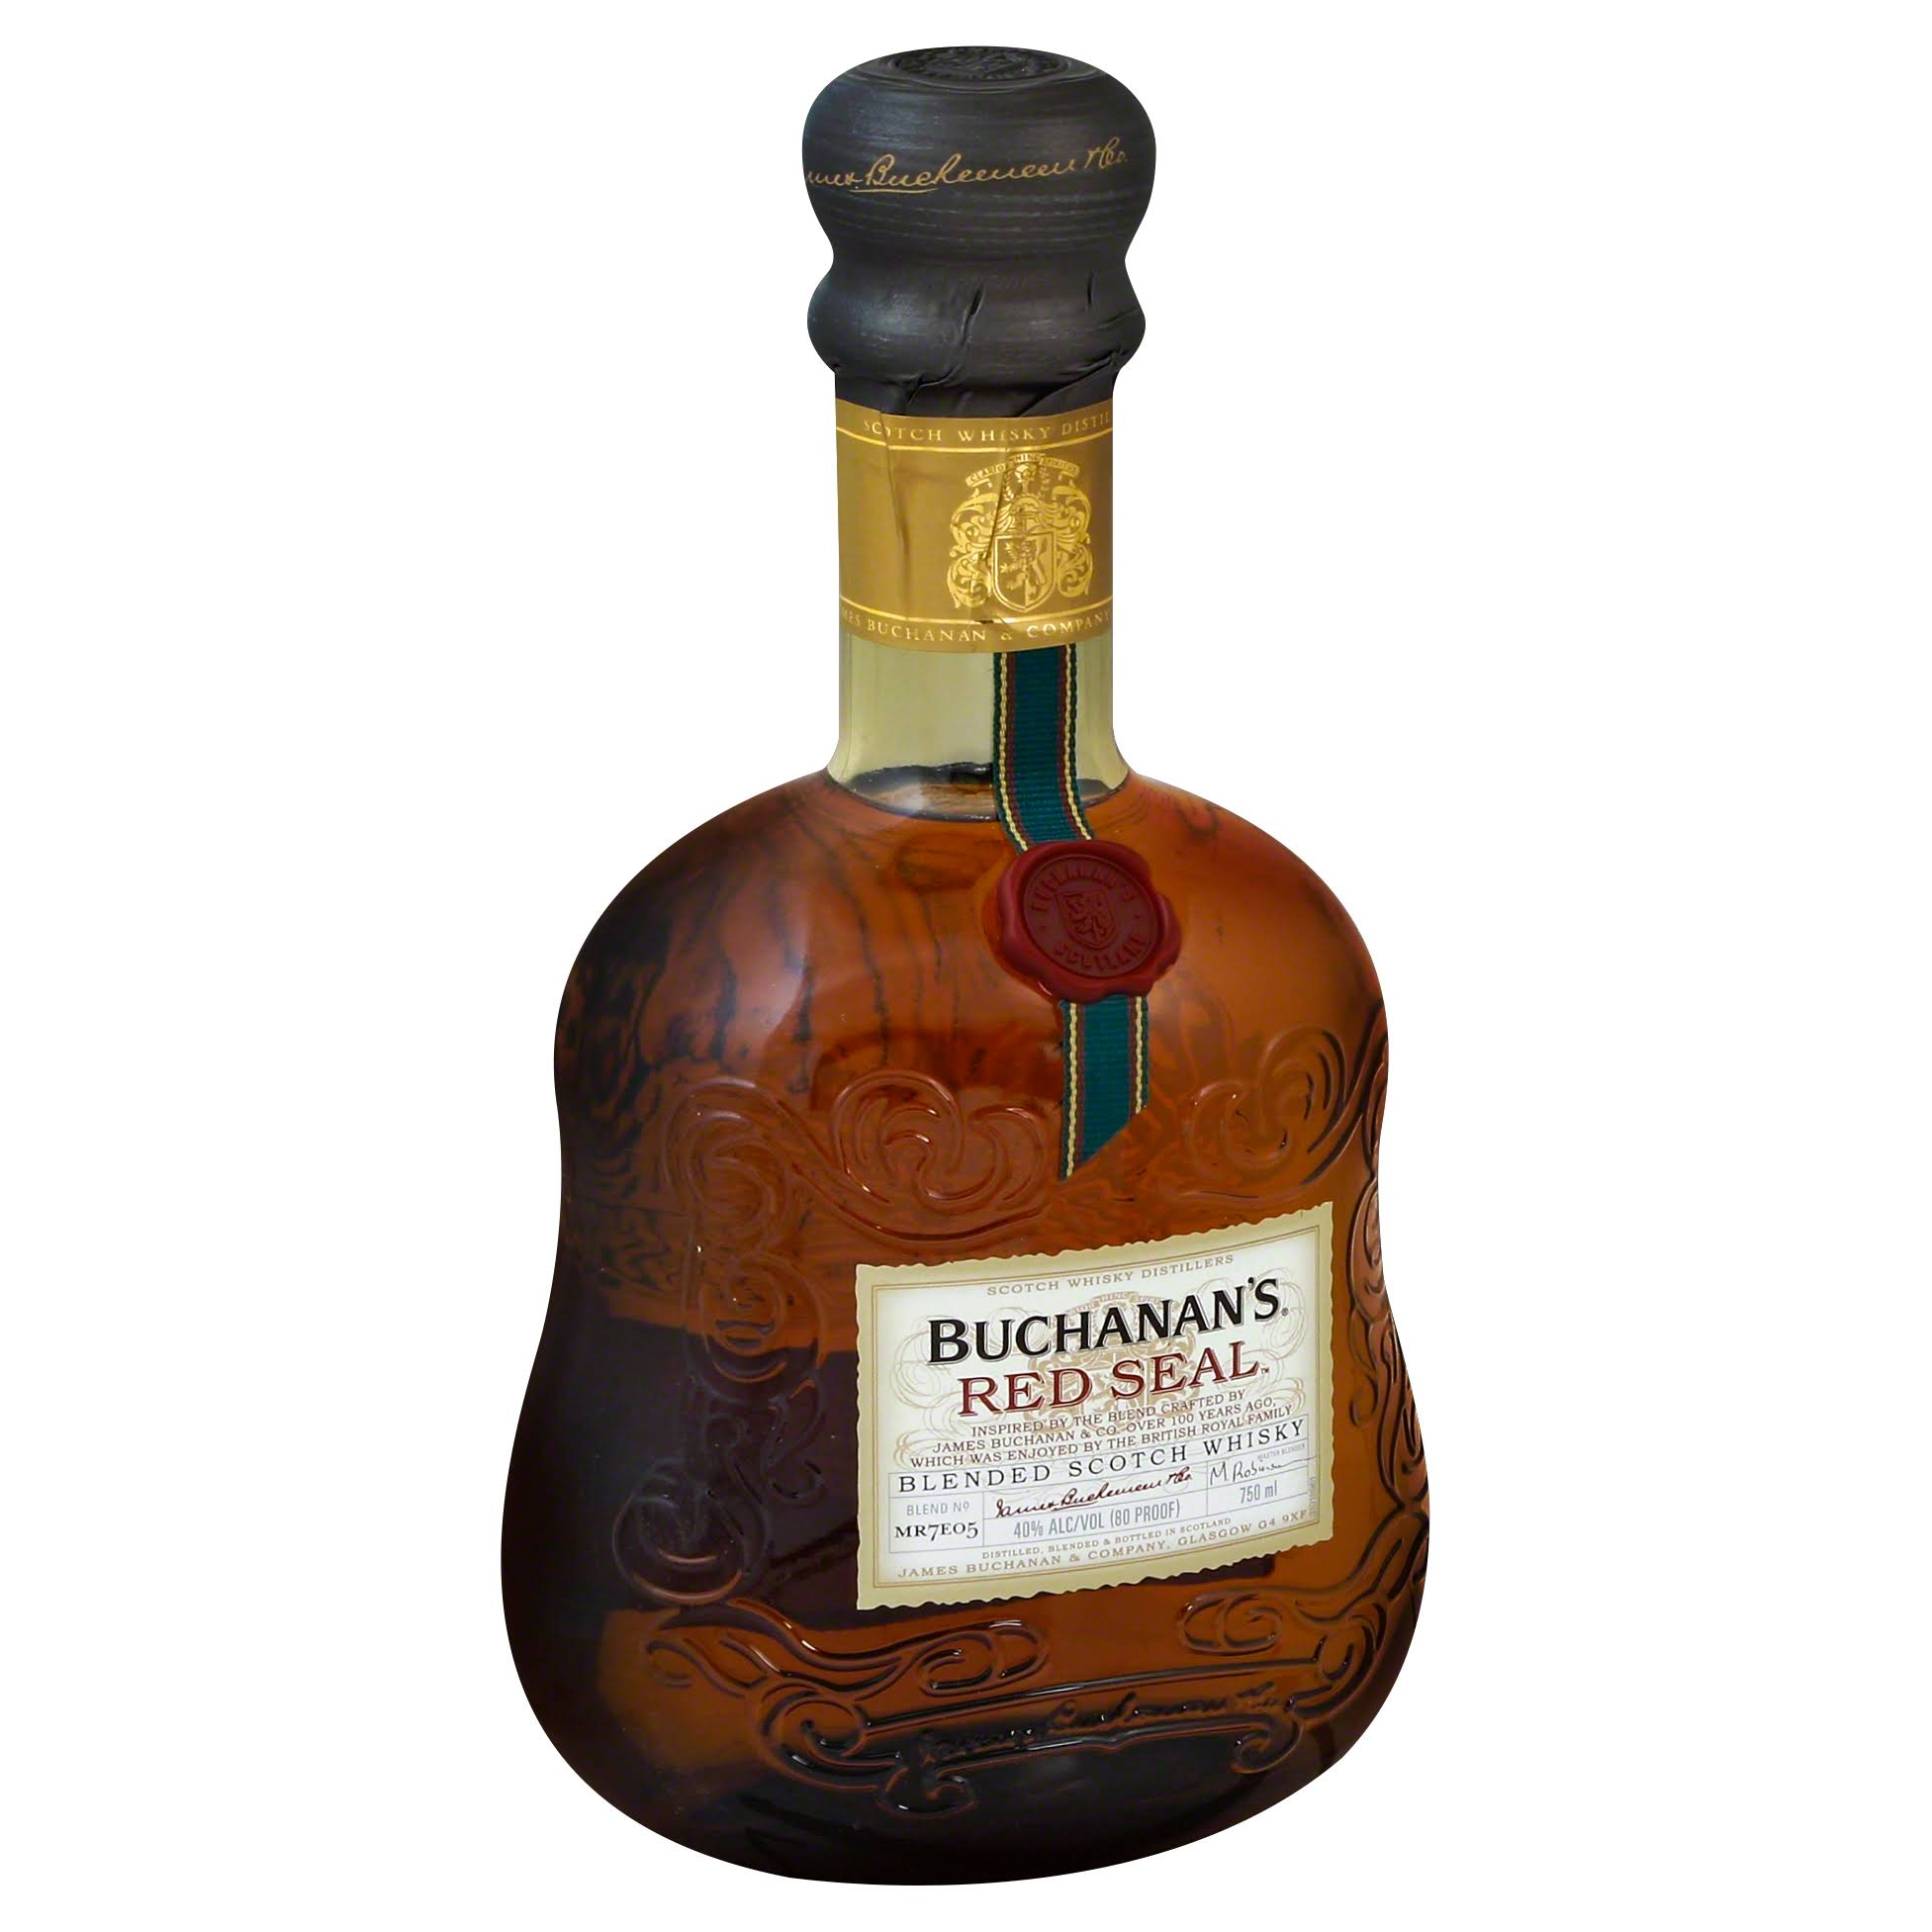 Buchanan's Red Seal Blended Scotch Whisky - 750ml